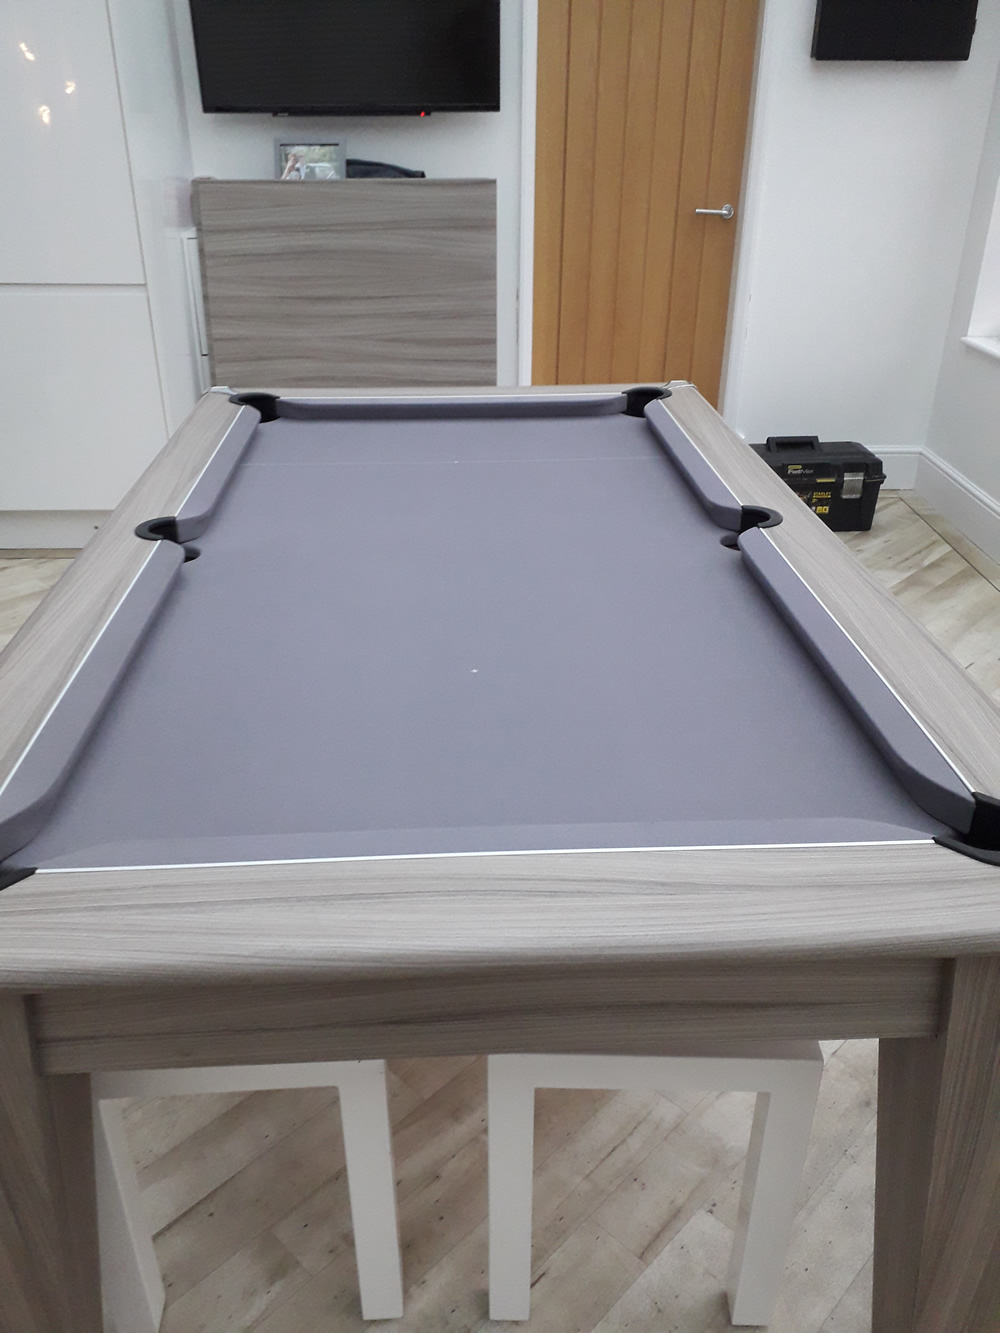 Gatley driftwood dining pool table recovered in silver cloth